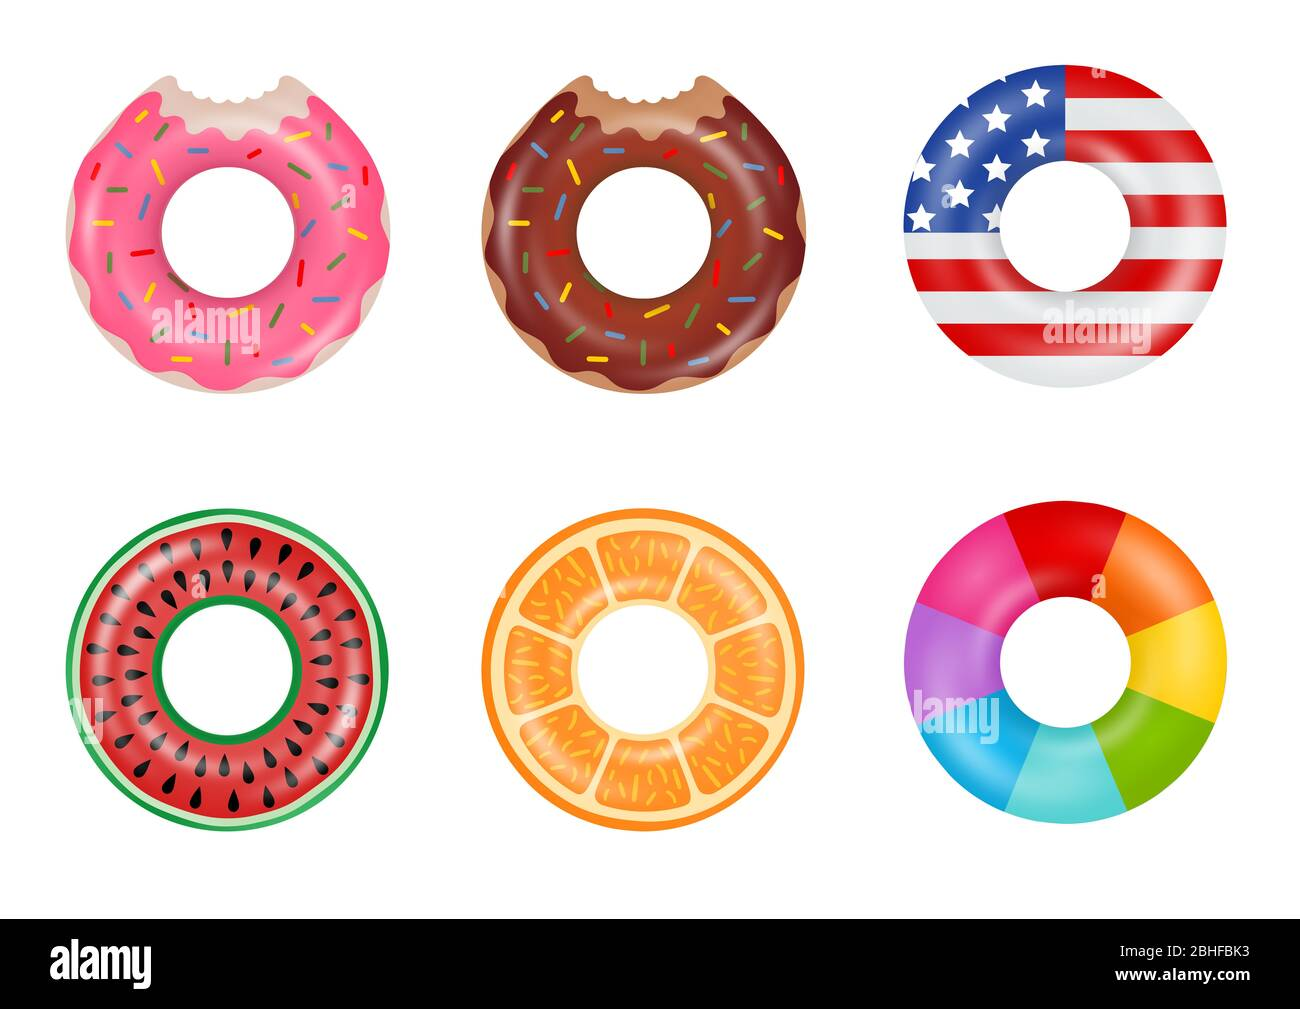 Set of colorful swimming rings. Inflatable doughnut, american flag, watermelon, orange and rainbow. Floating rubber toys. Stock Photo